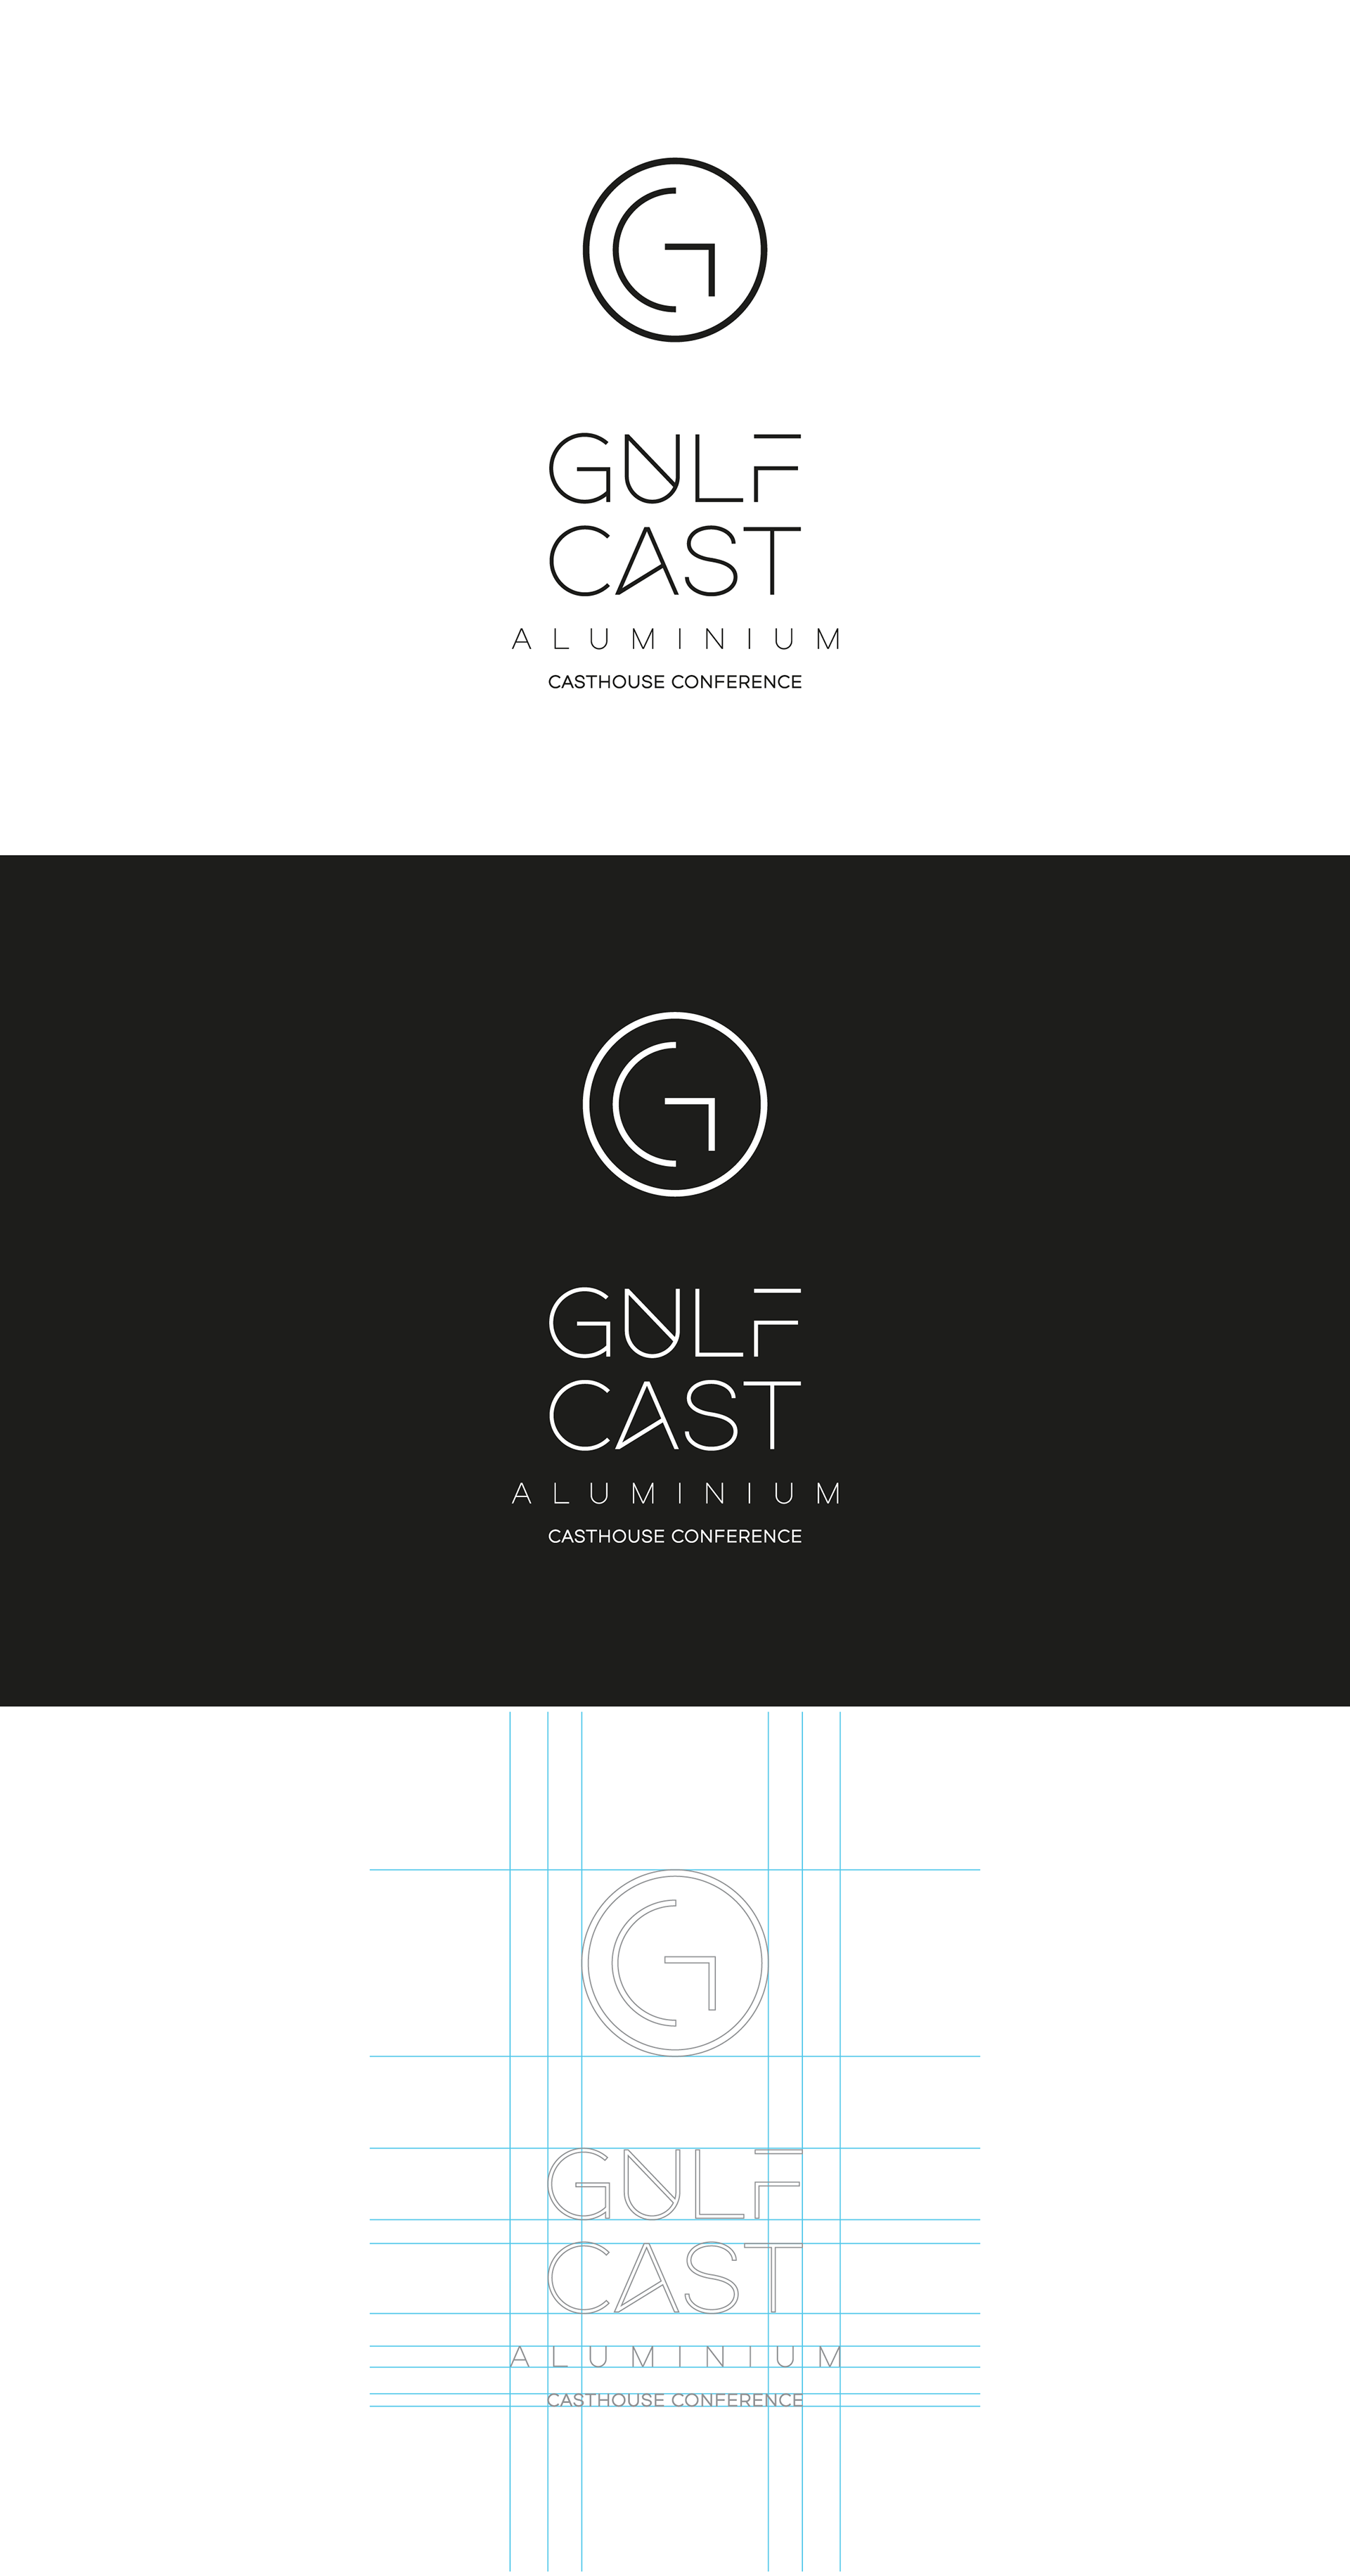 Gulf Cast | Aluminium Casthouse Conference on Behance